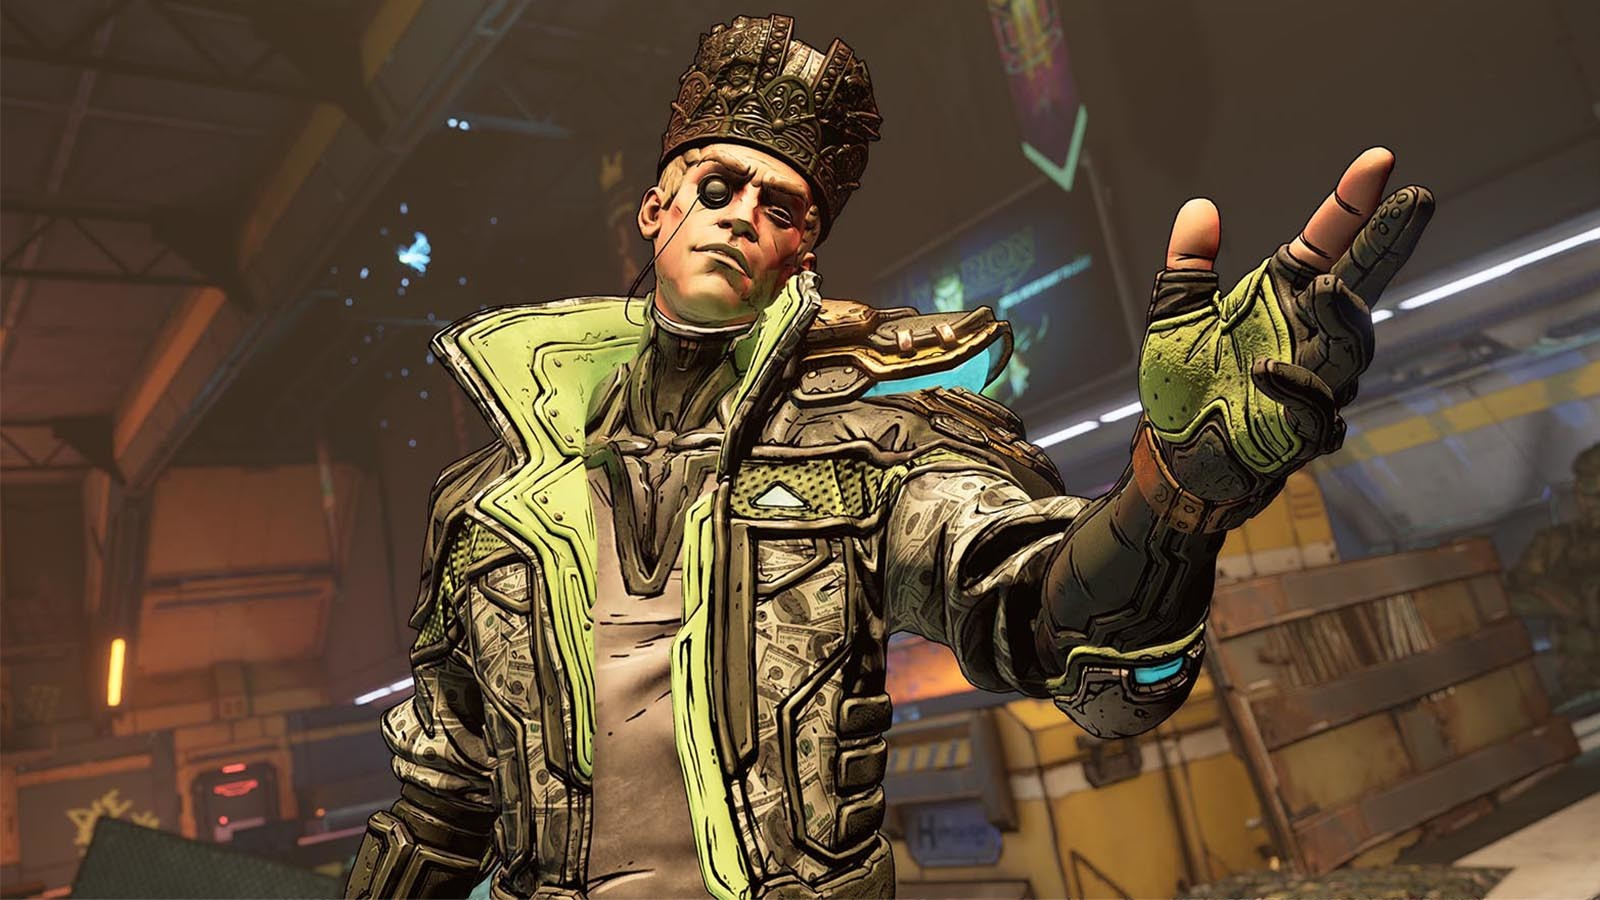 Borderlands 3 Moxxi S Heist Of The Handsome Jackpot Epic Games Cd Key For Pc And Mac Buy Now